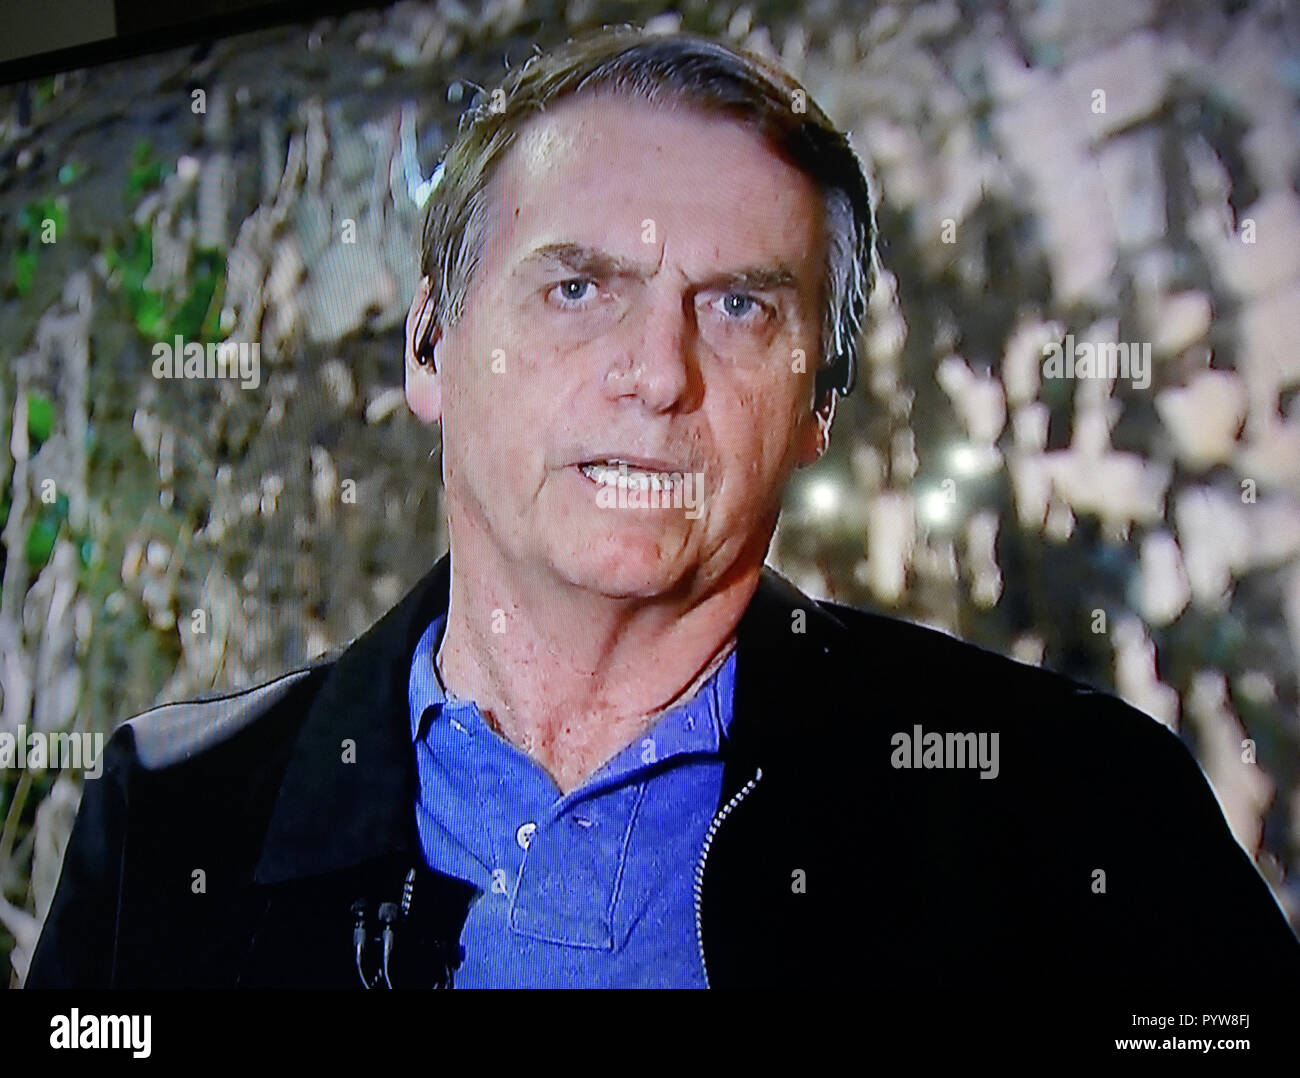 Tv Globo Stock Photos & Tv Globo Stock Images - Page 3 - Alamy